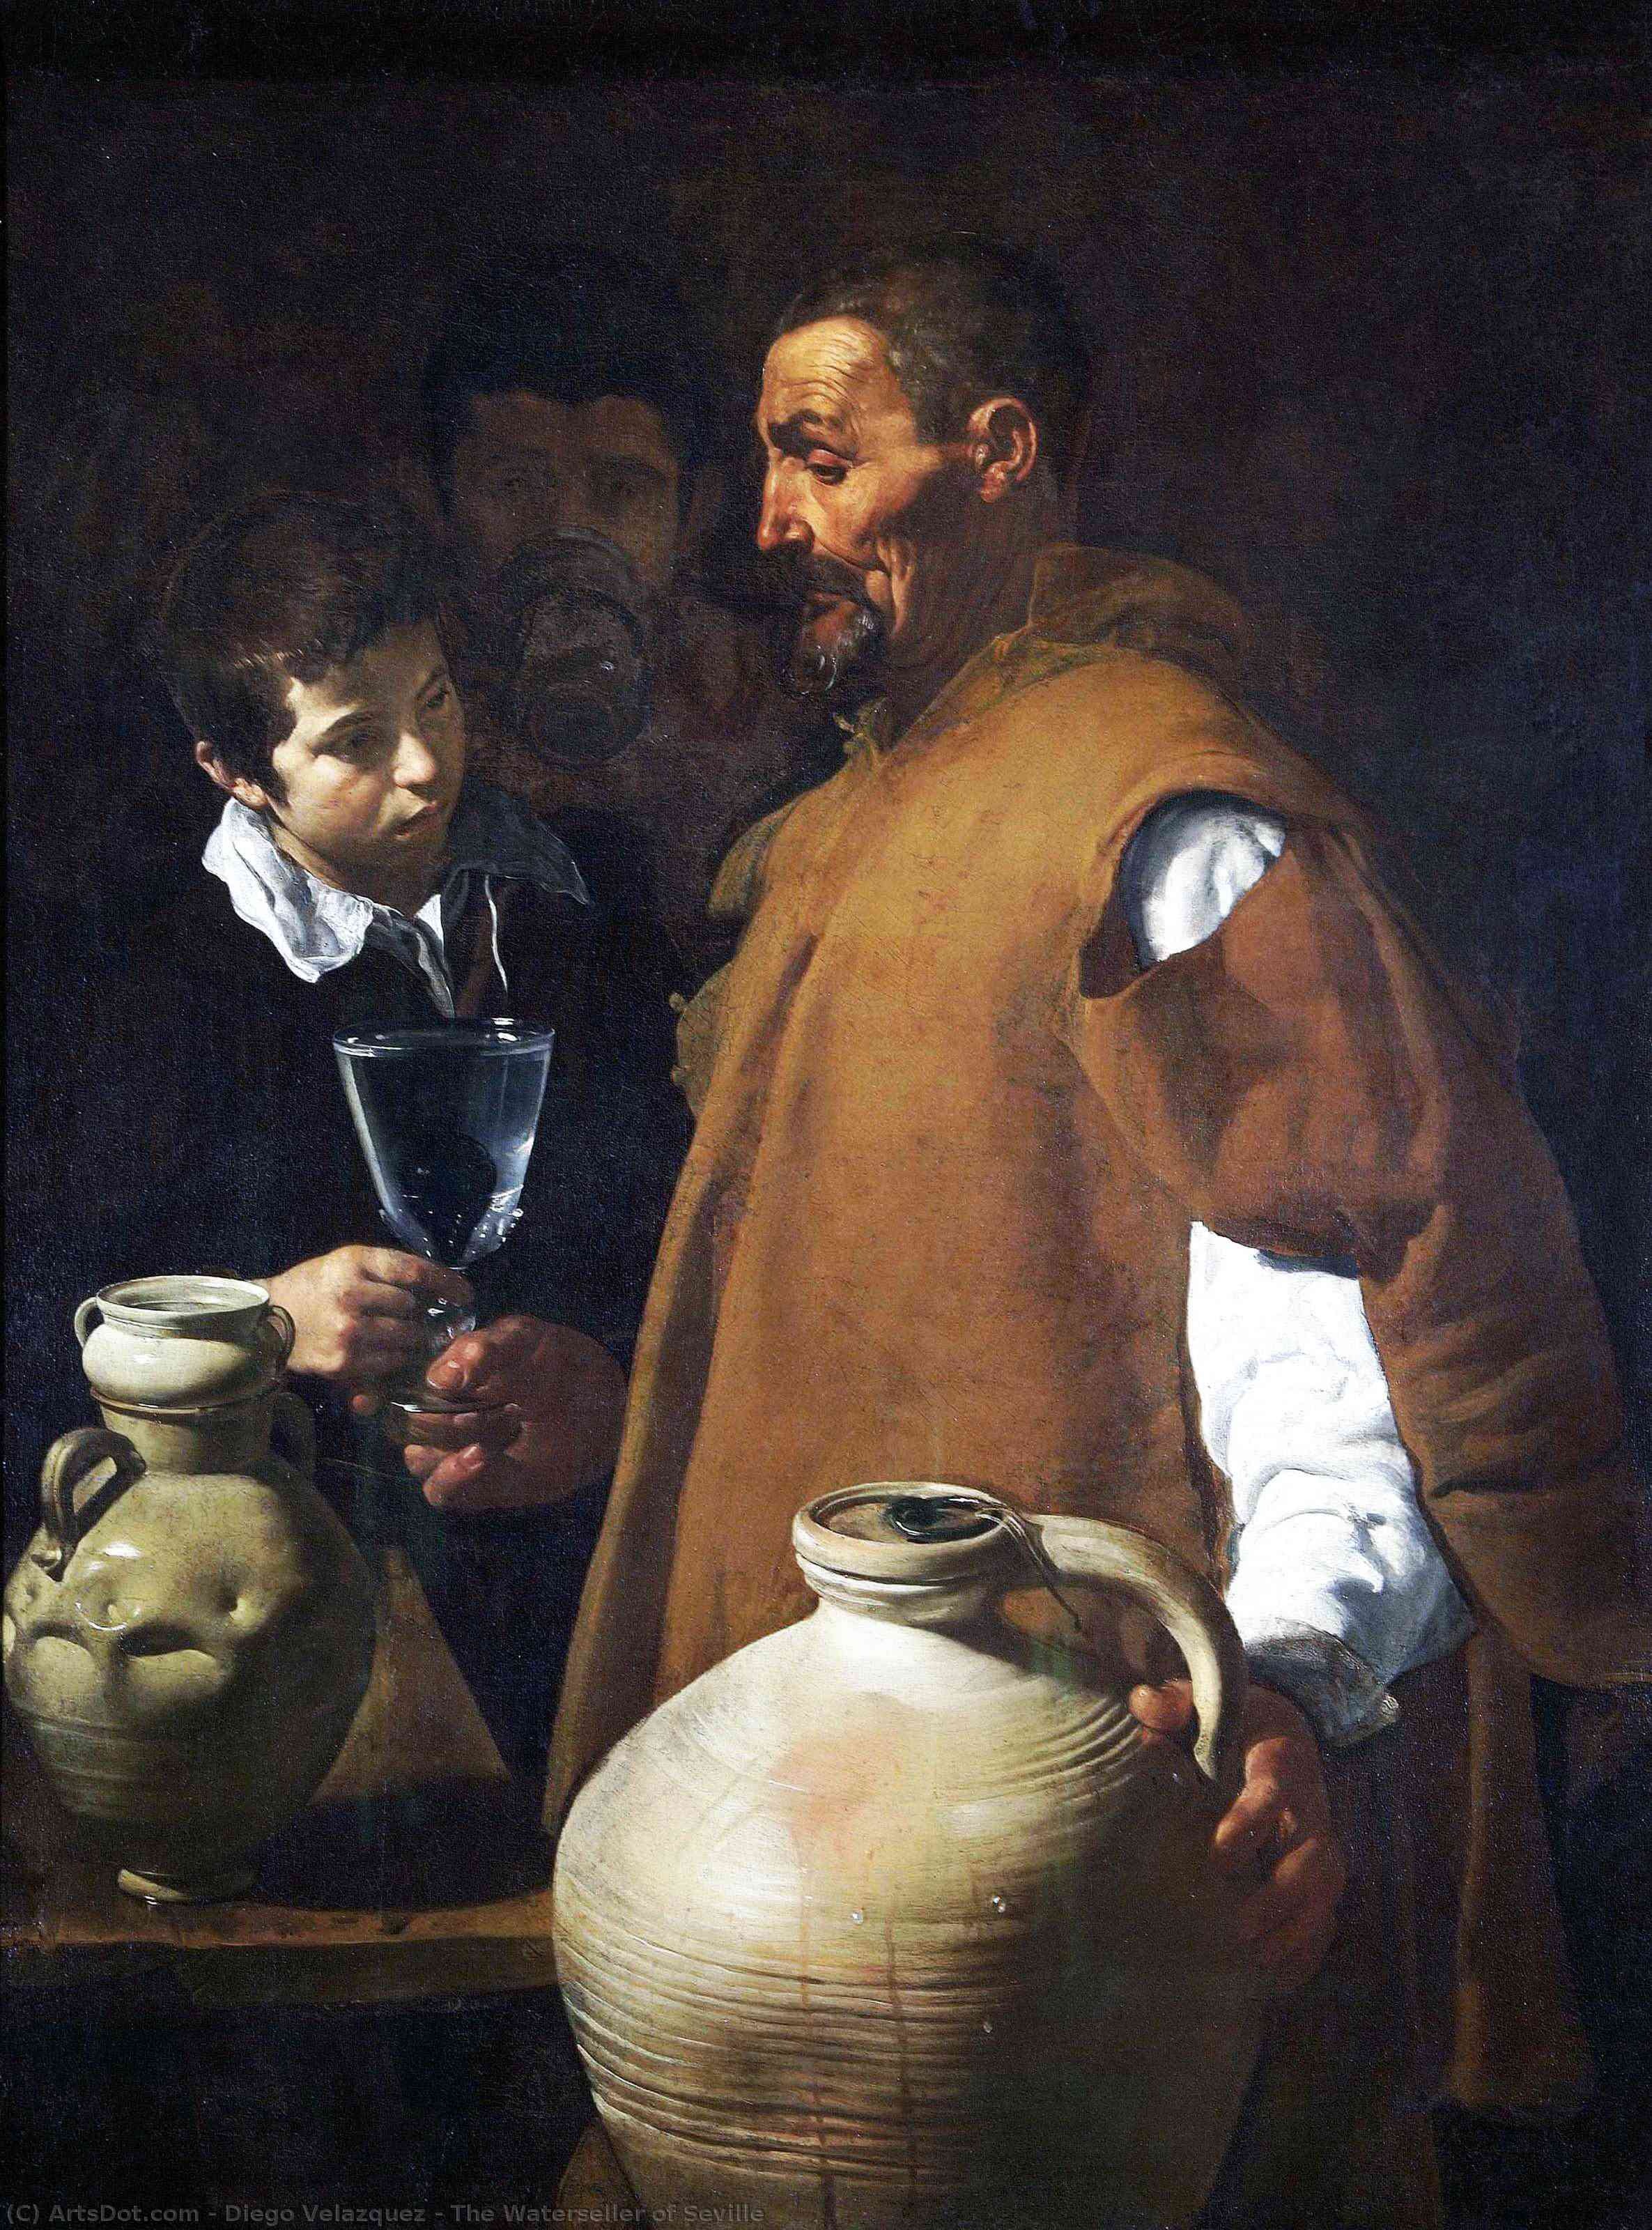 Wikioo.org - The Encyclopedia of Fine Arts - Painting, Artwork by Diego Velazquez - The Waterseller of Seville